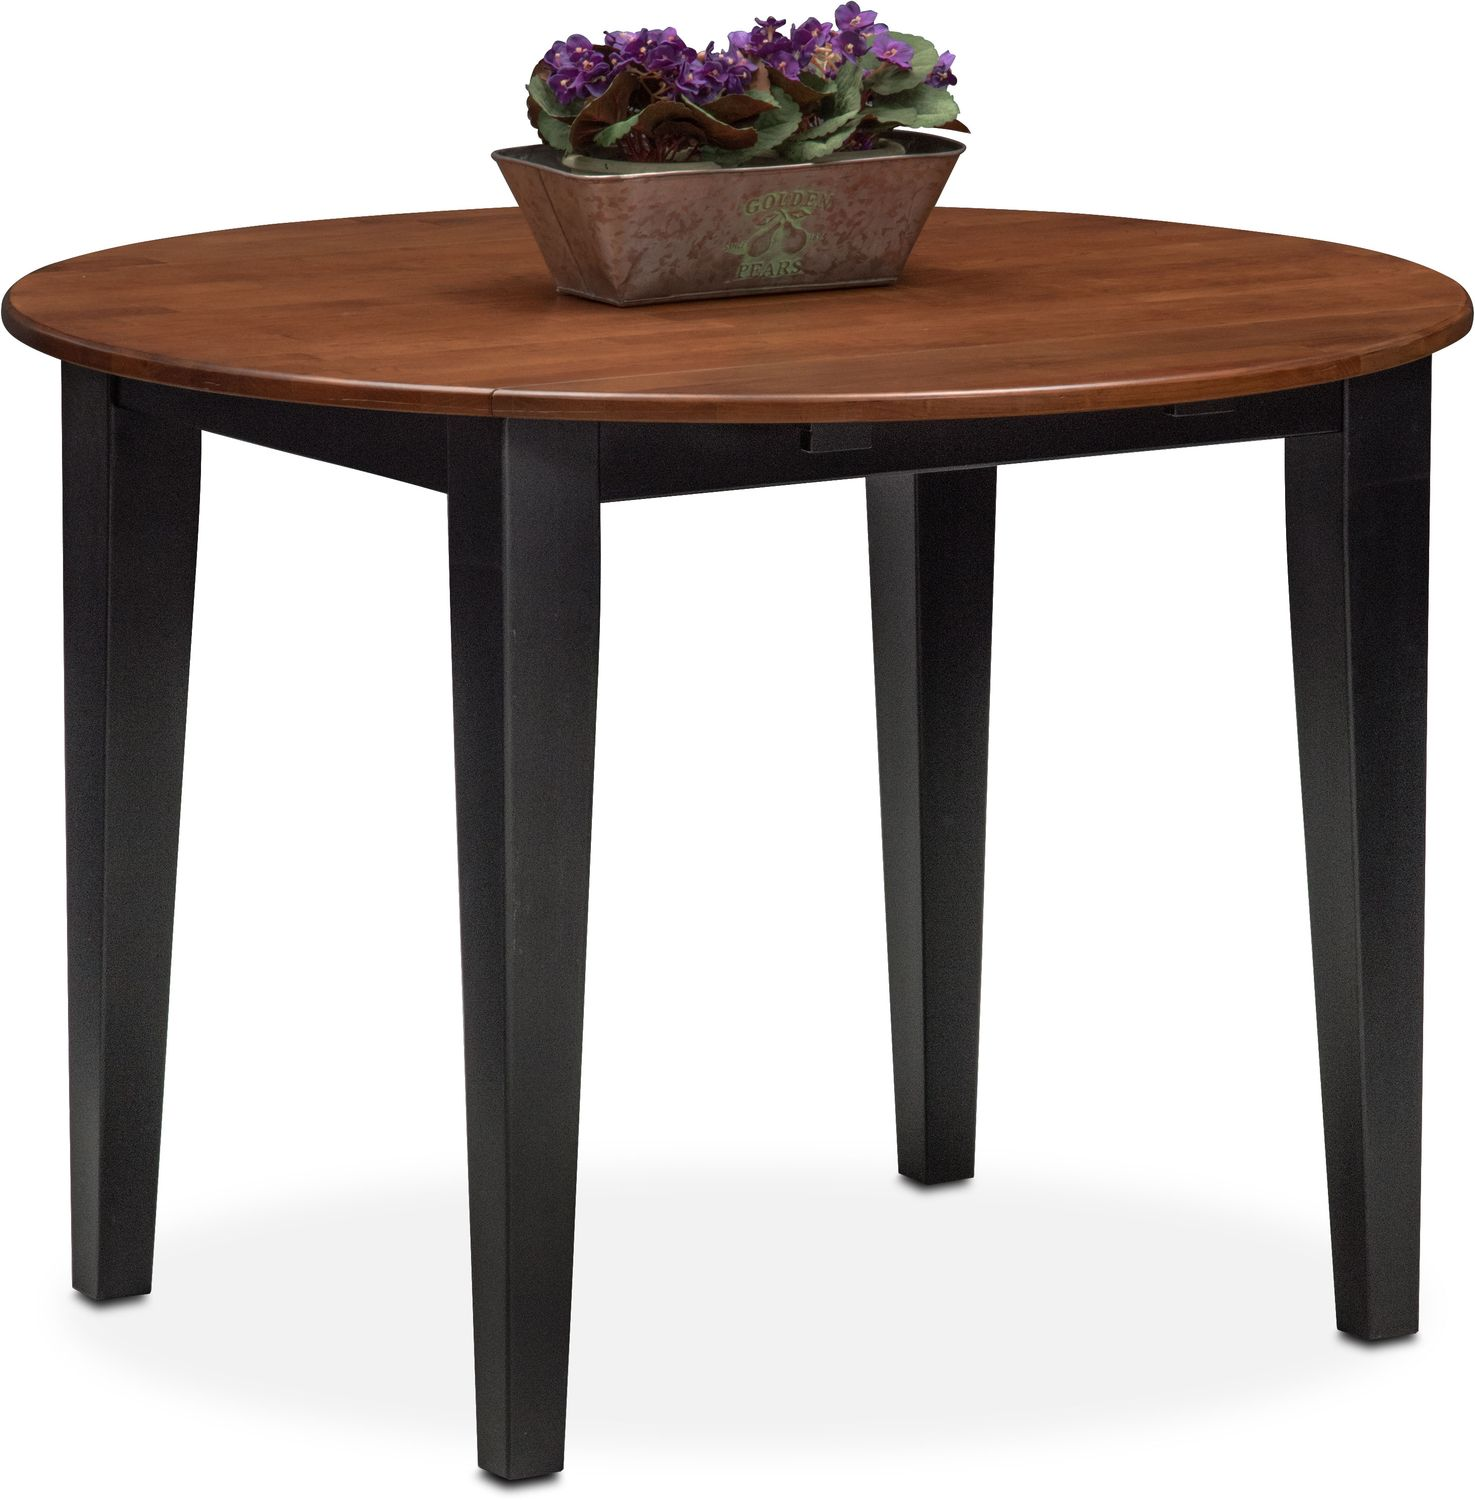 nantucket drop leaf table black and cherry american signature small accent modern nightstand lights furniture side french style coffee round decor glass end concrete outdoor